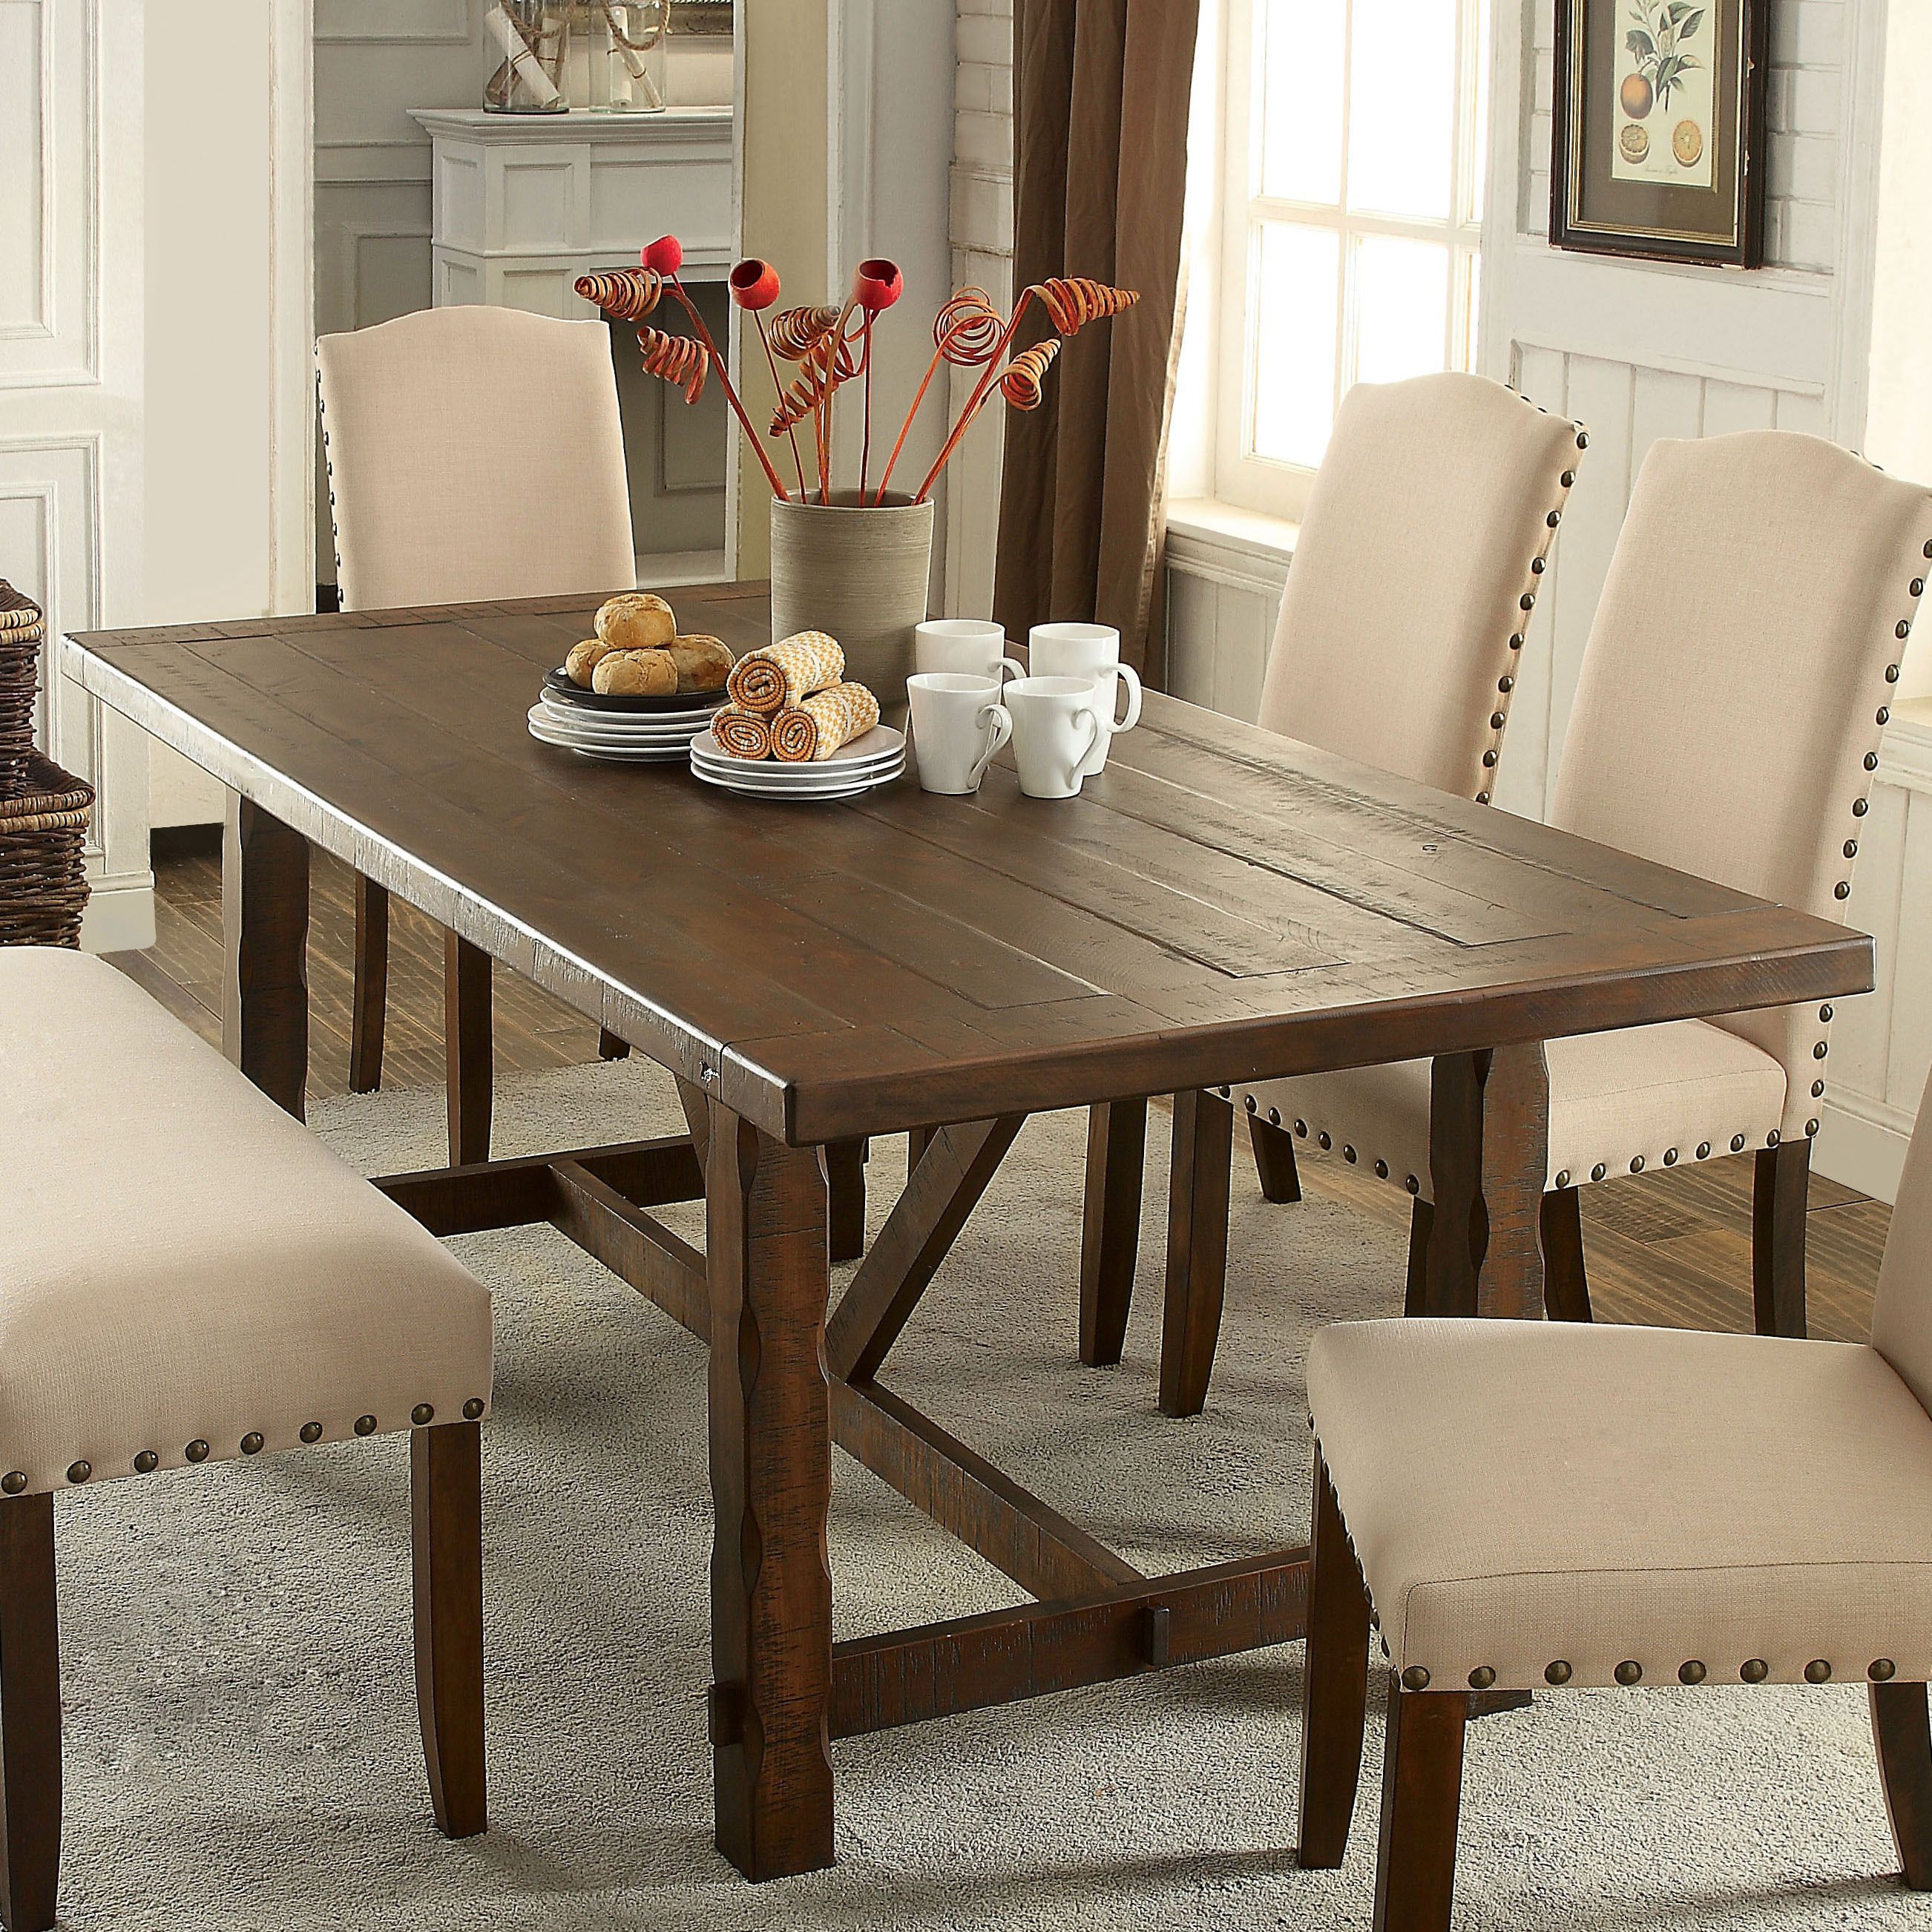 Wide and inviting, this dining table is a display